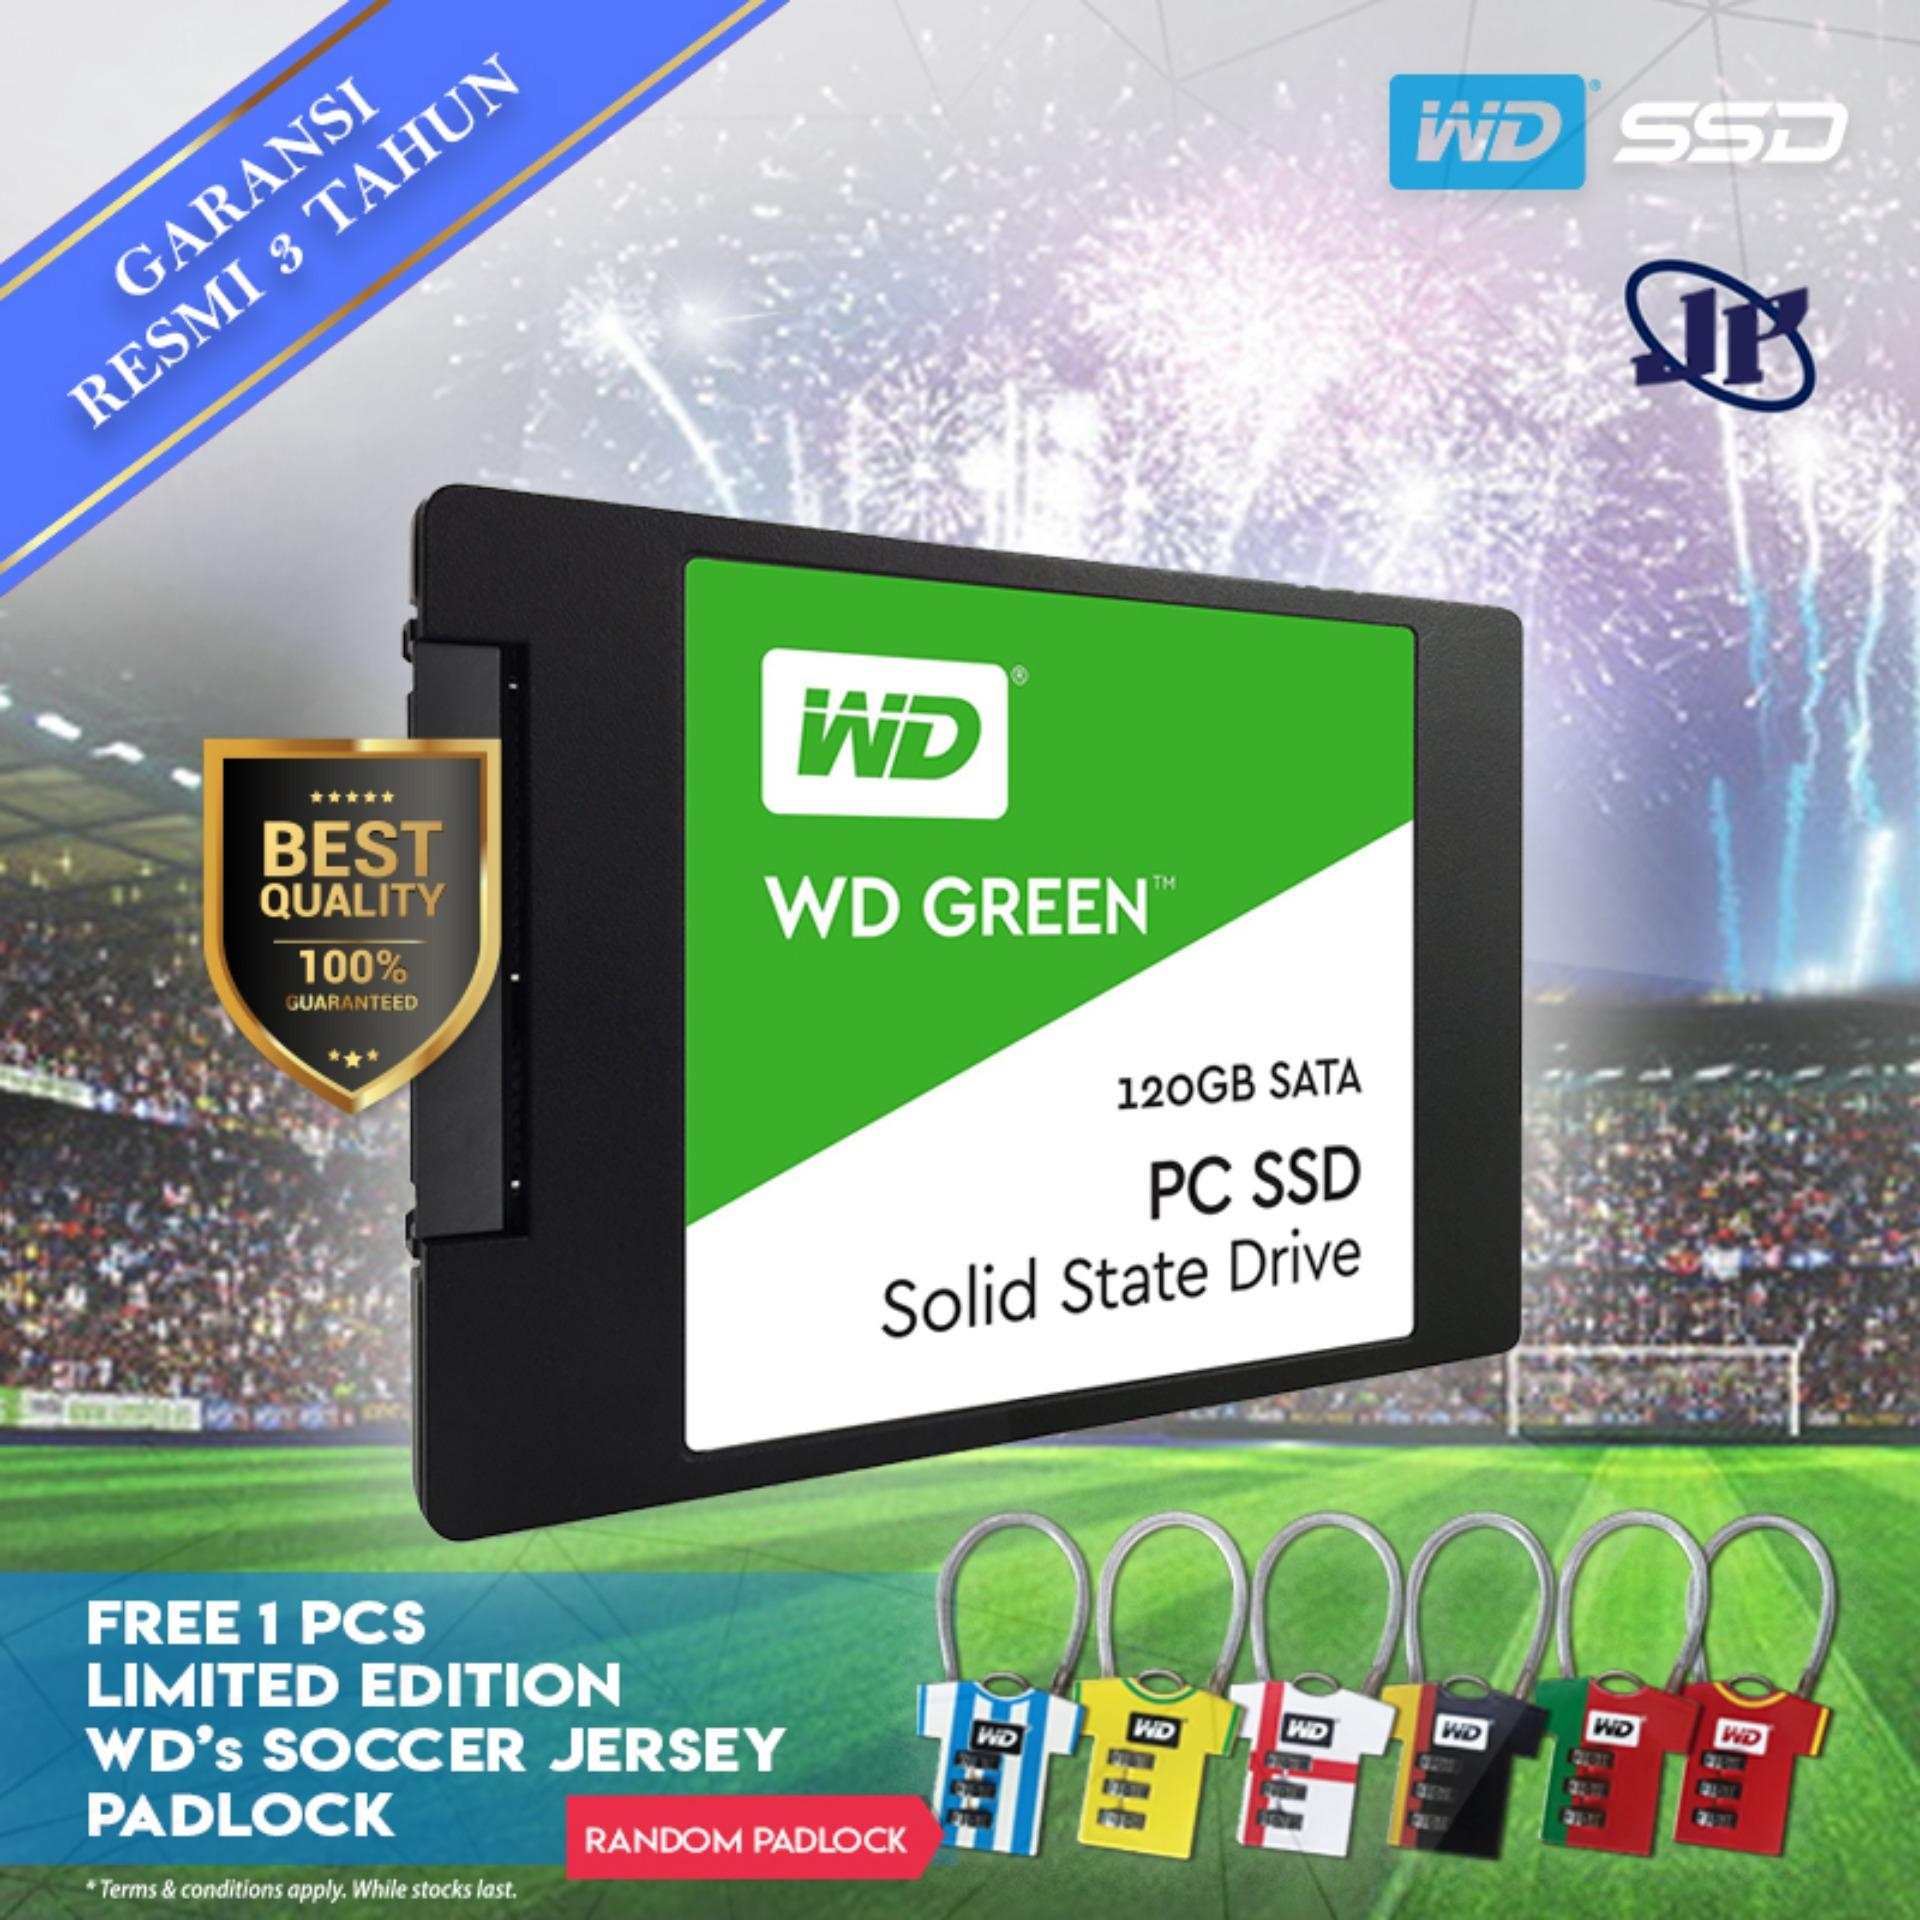 Western Digital WD Green SSD 120GB 2.5